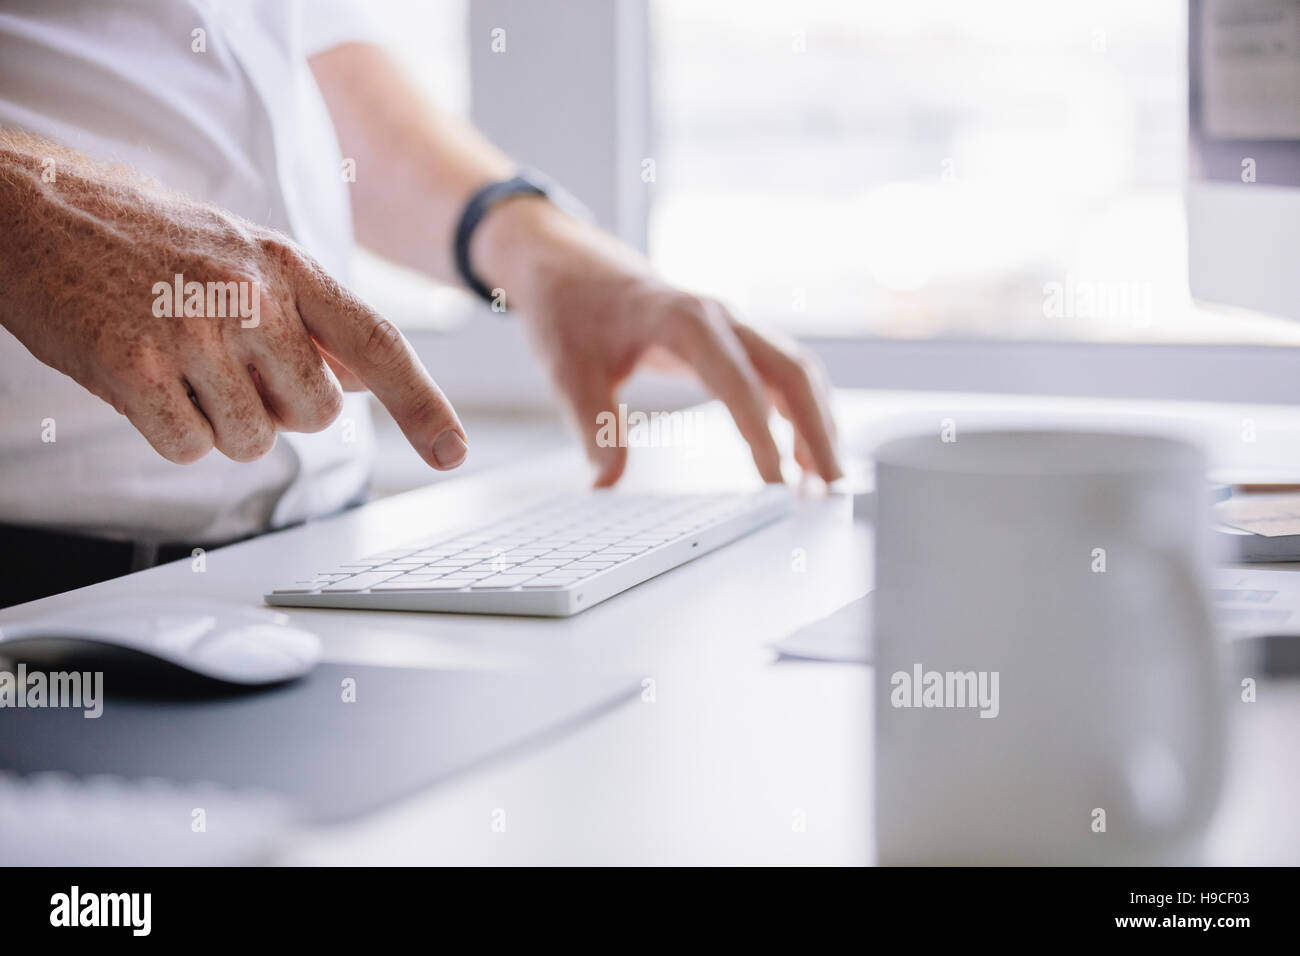 Close up shot of young man hands typing on wireless keyboard on desk in office. - Stock Image